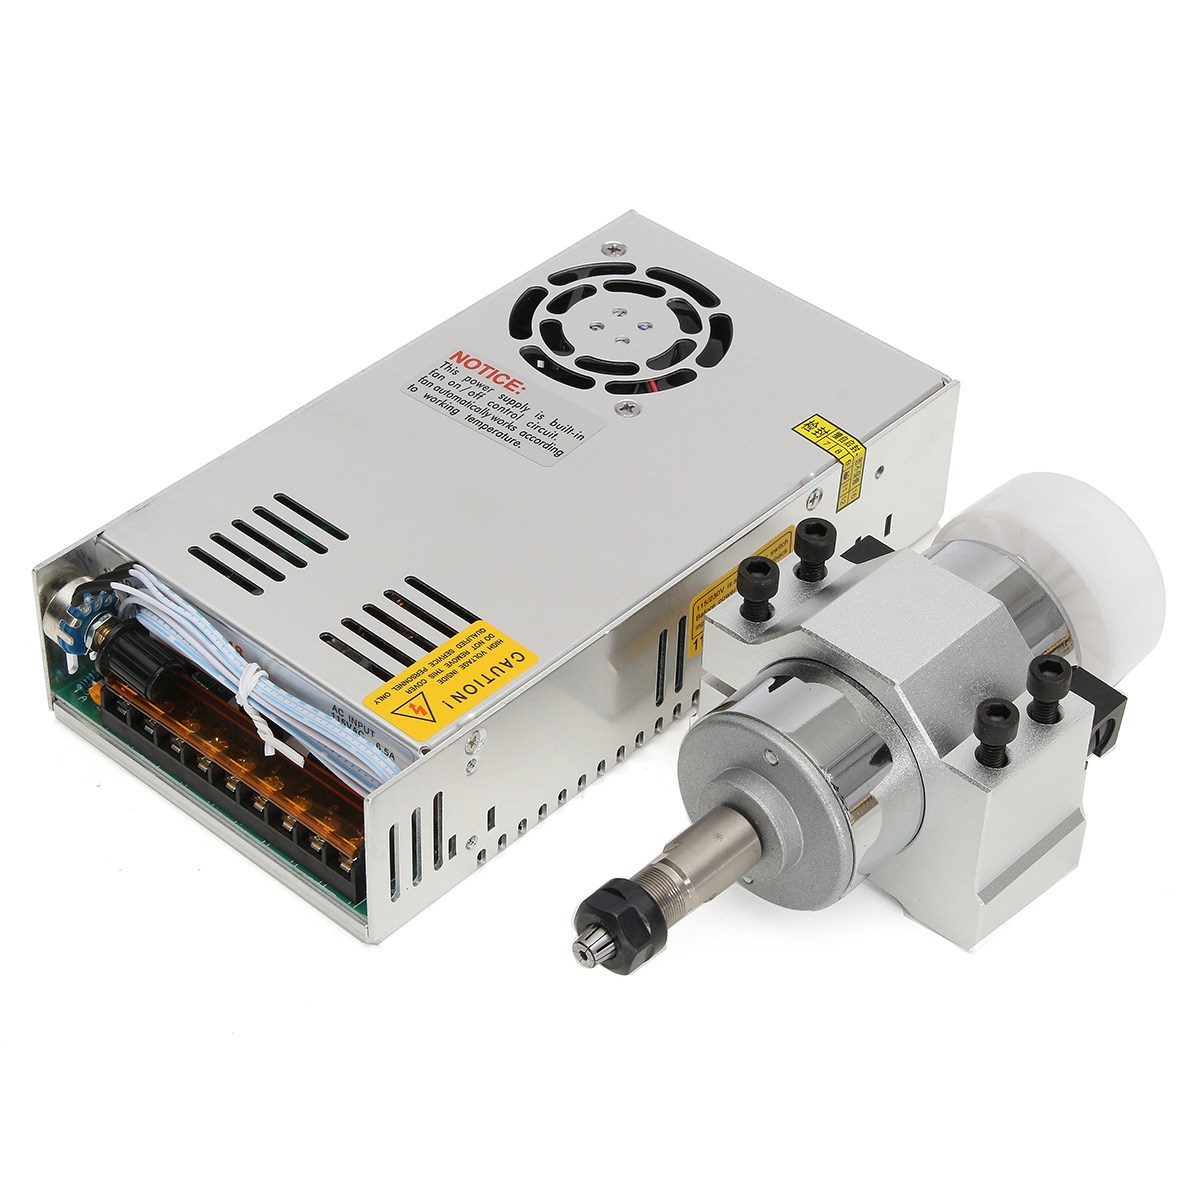 300W Engraving Machine Air Cooled Spindle ER11 Chuck CNC 0.5KW Spindle Motor 52mm clamps Power Supply Speed Governor For DIY CNC лопата штыковая 19309 с черенком